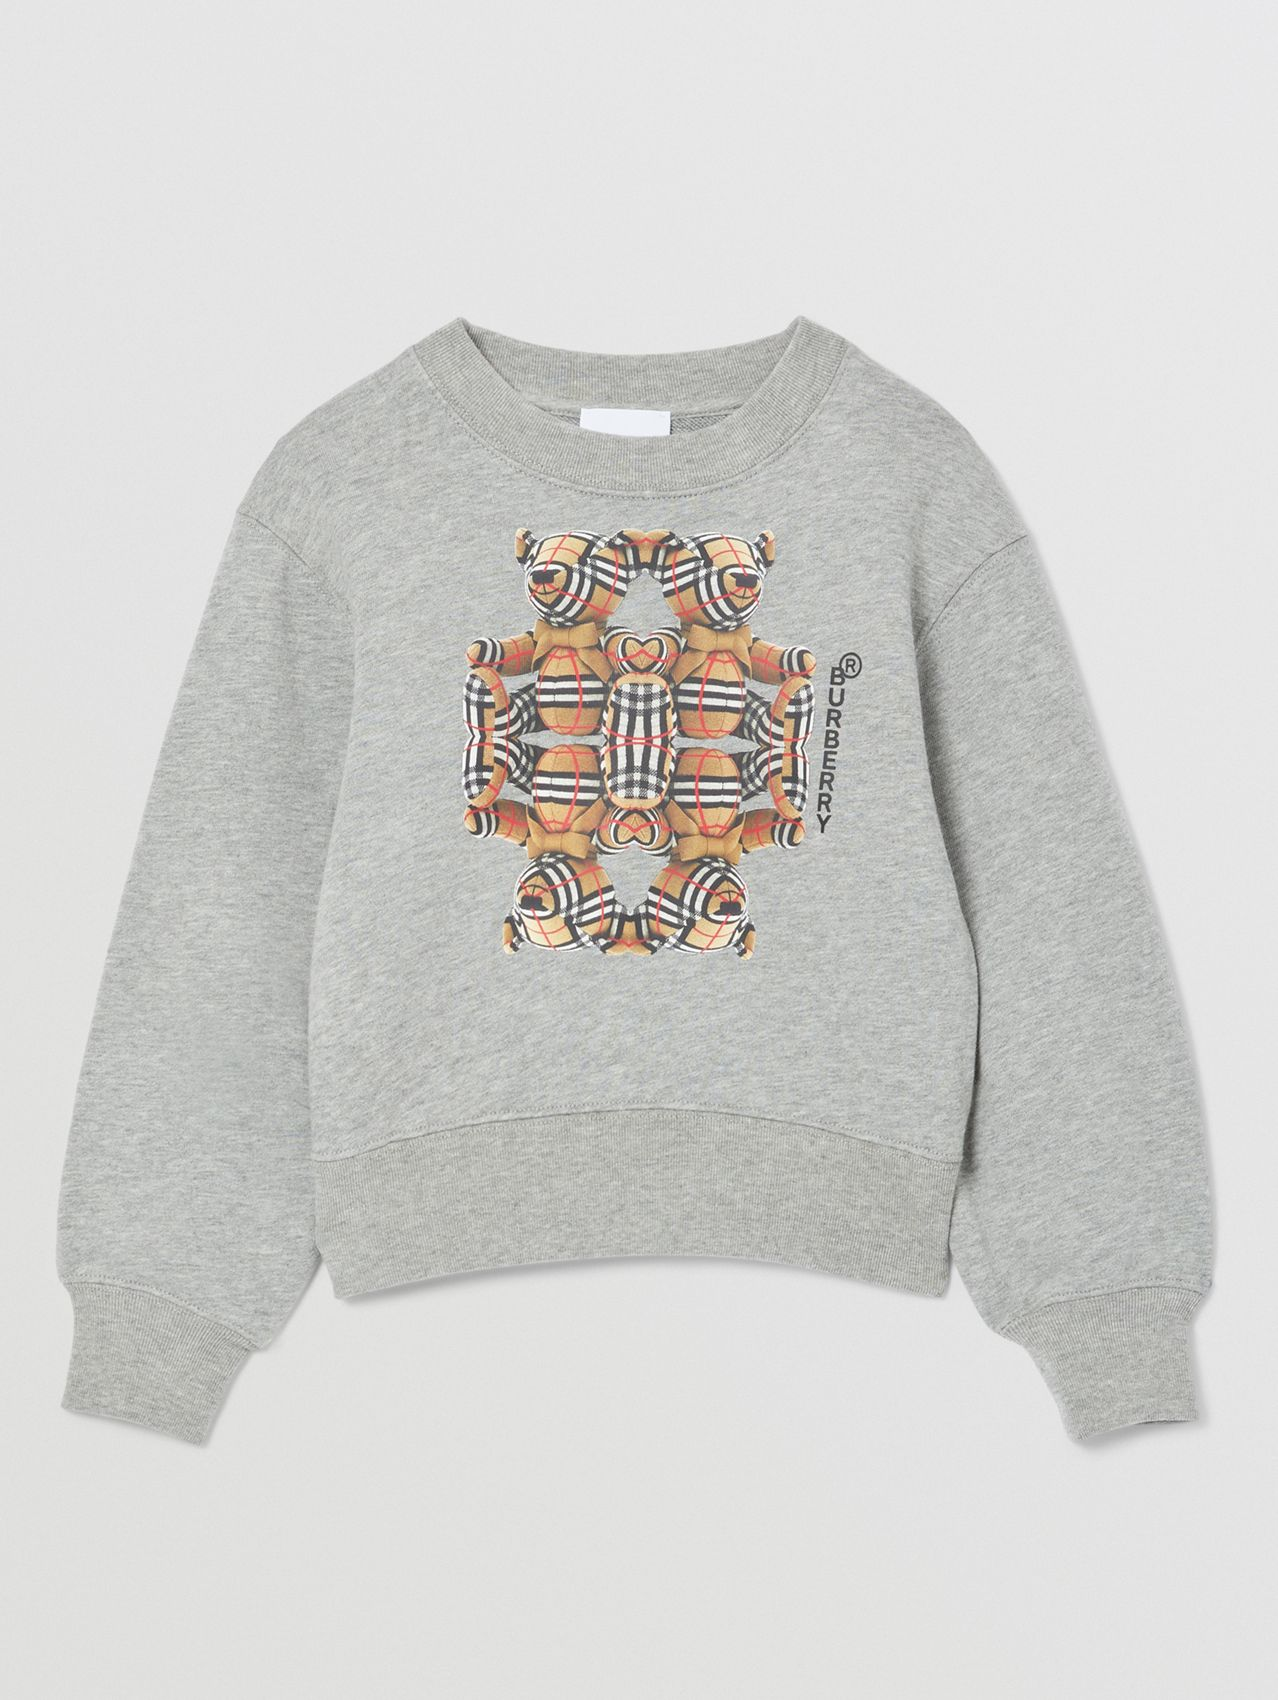 Thomas Bear Motif Cotton Sweatshirt in Grey Melange